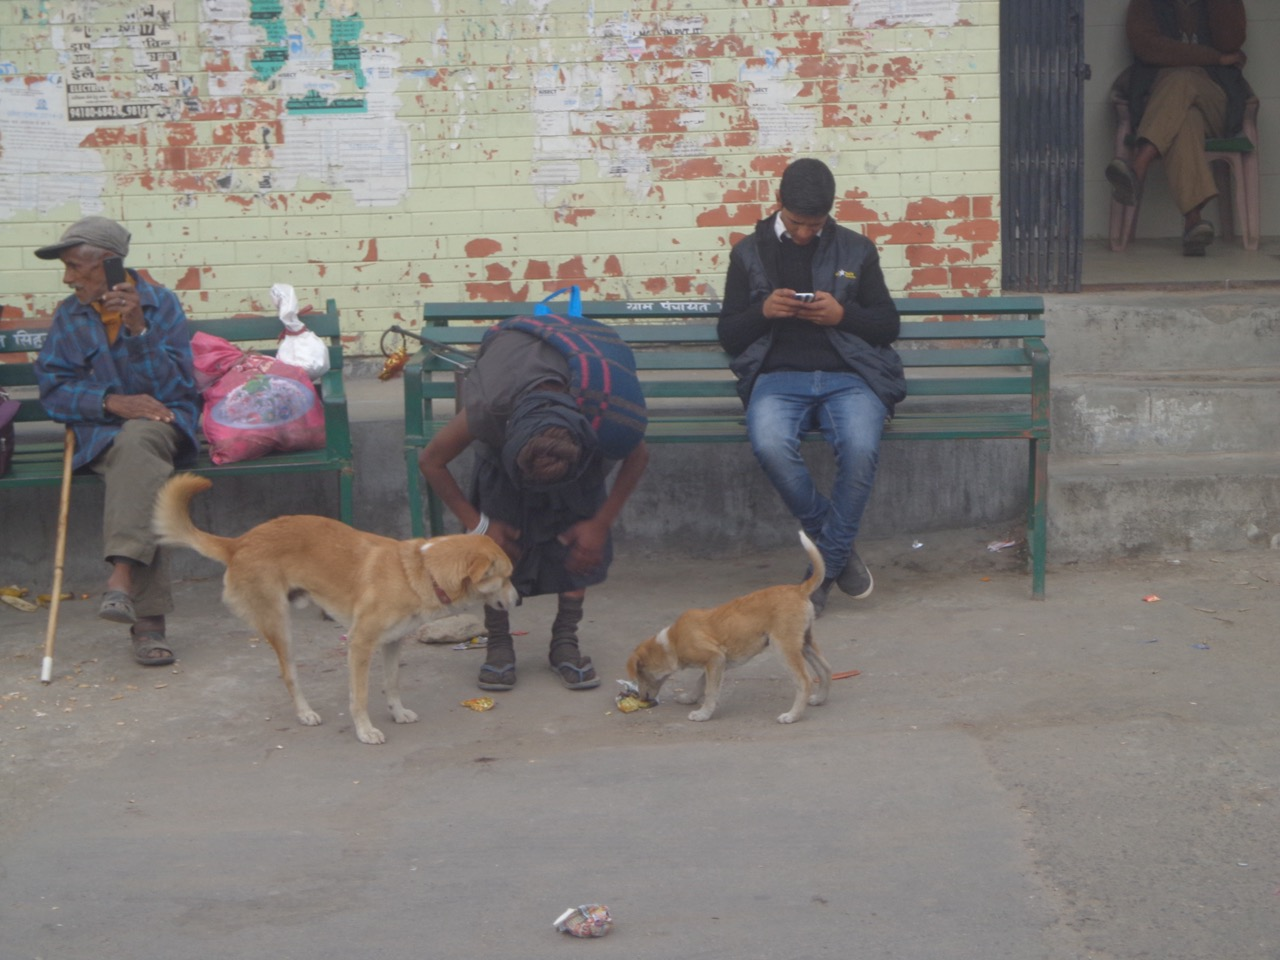 An ascetic feeding two dogs. I took this photo when the bus had stopped to let a large number of marriage attendees in.